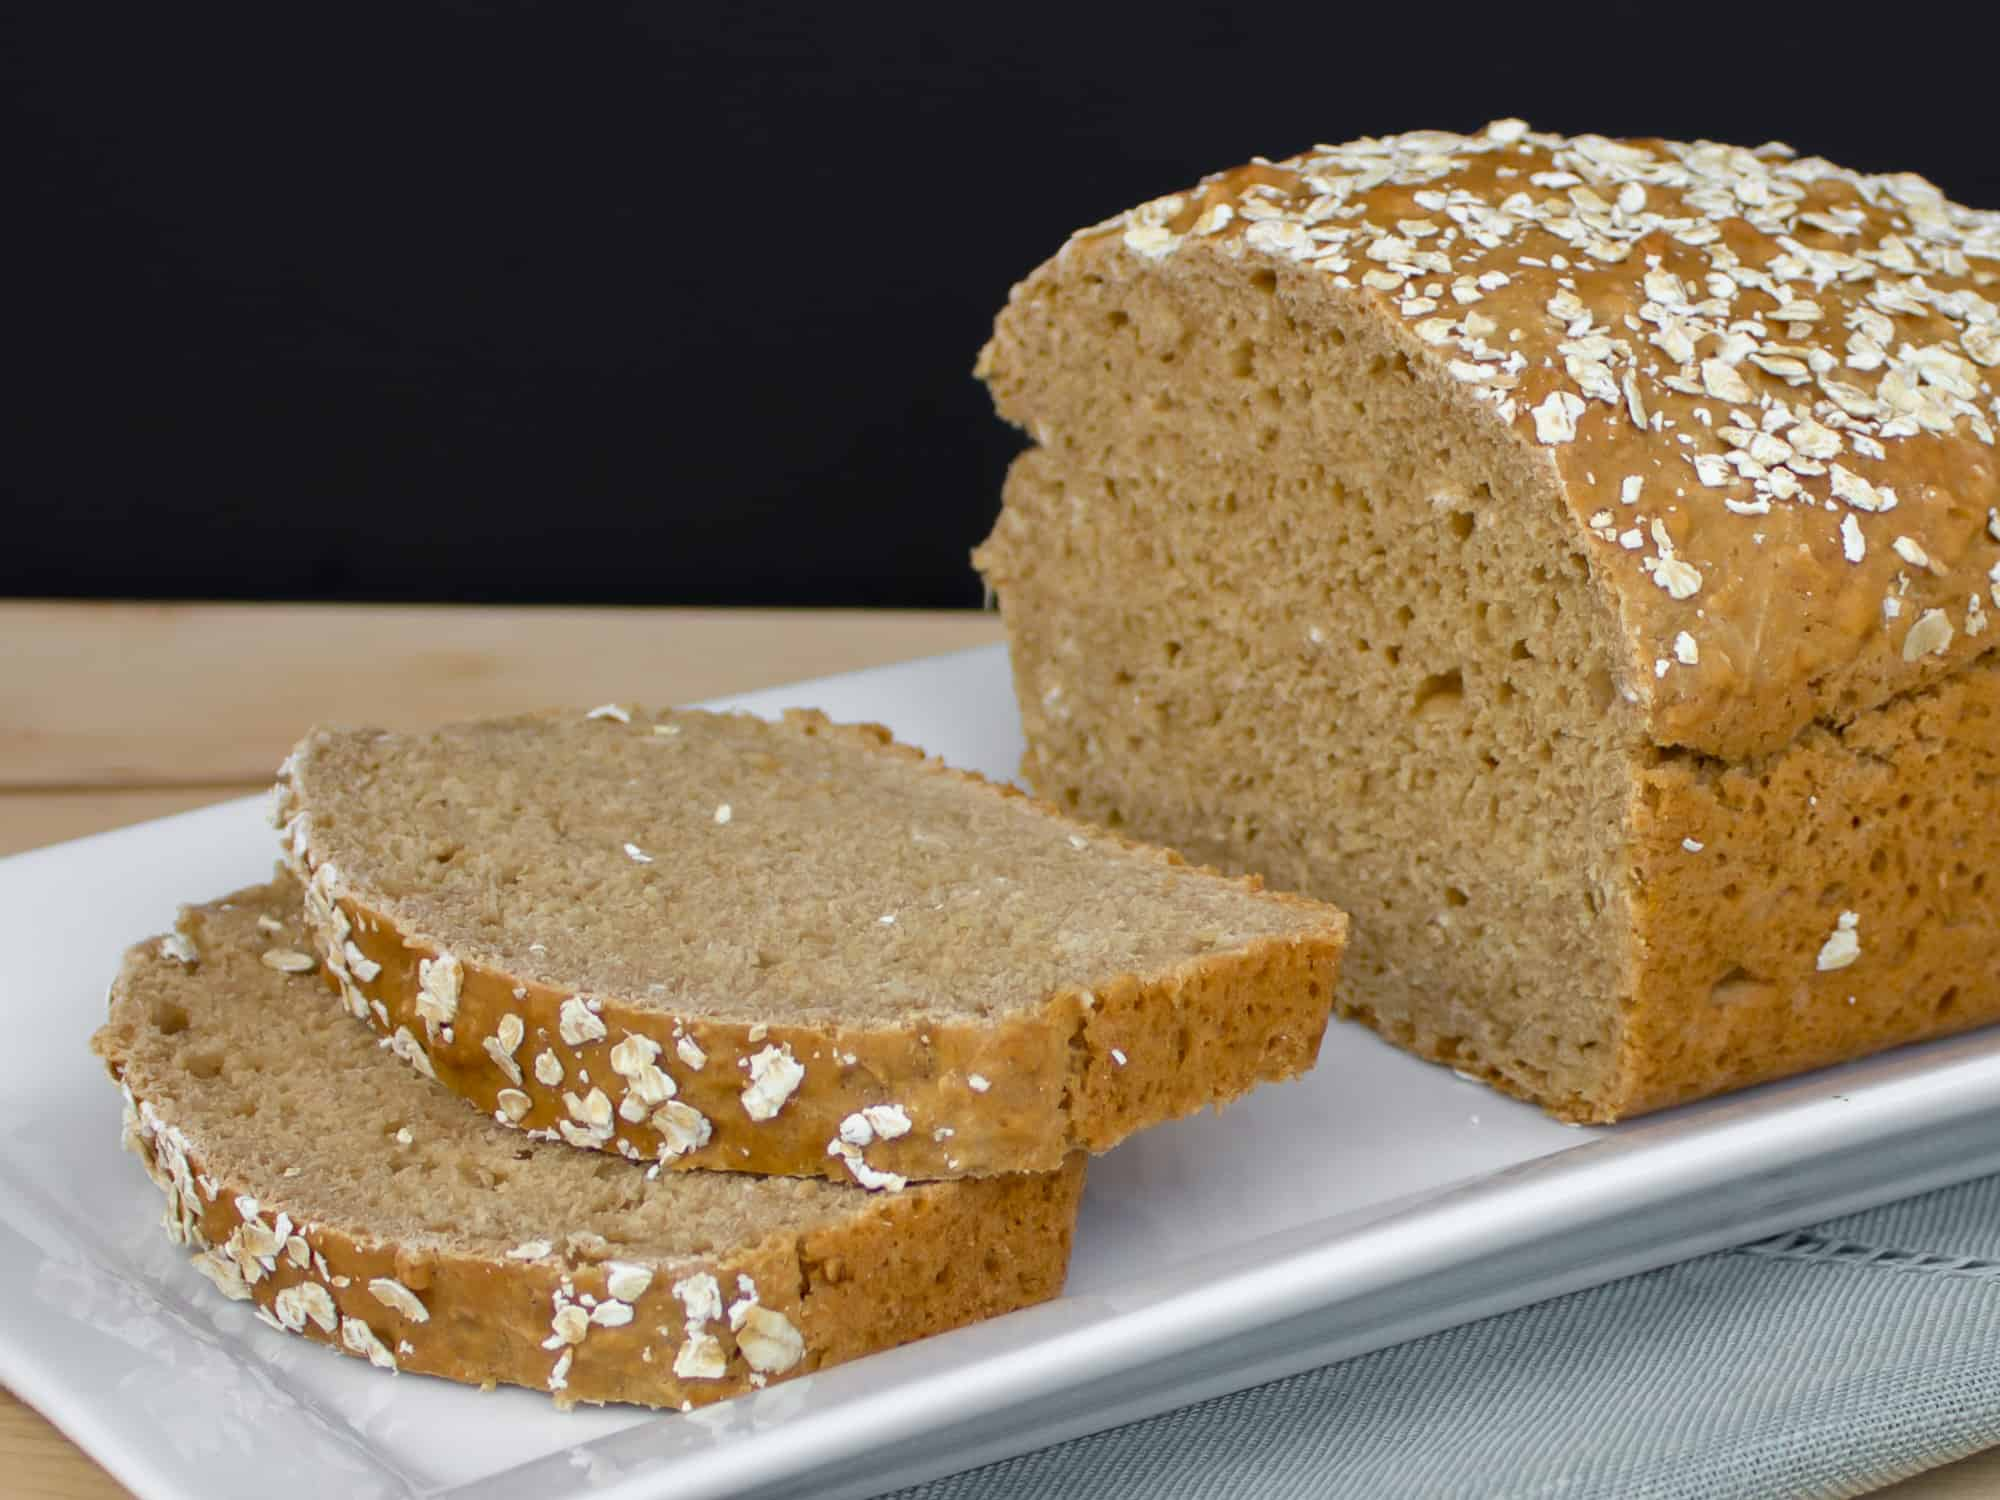 This Guinness beer bread 'no yeast' recipe can be made in under an hour and tastes amazing with the wonderful taste of the classic Irish stout.